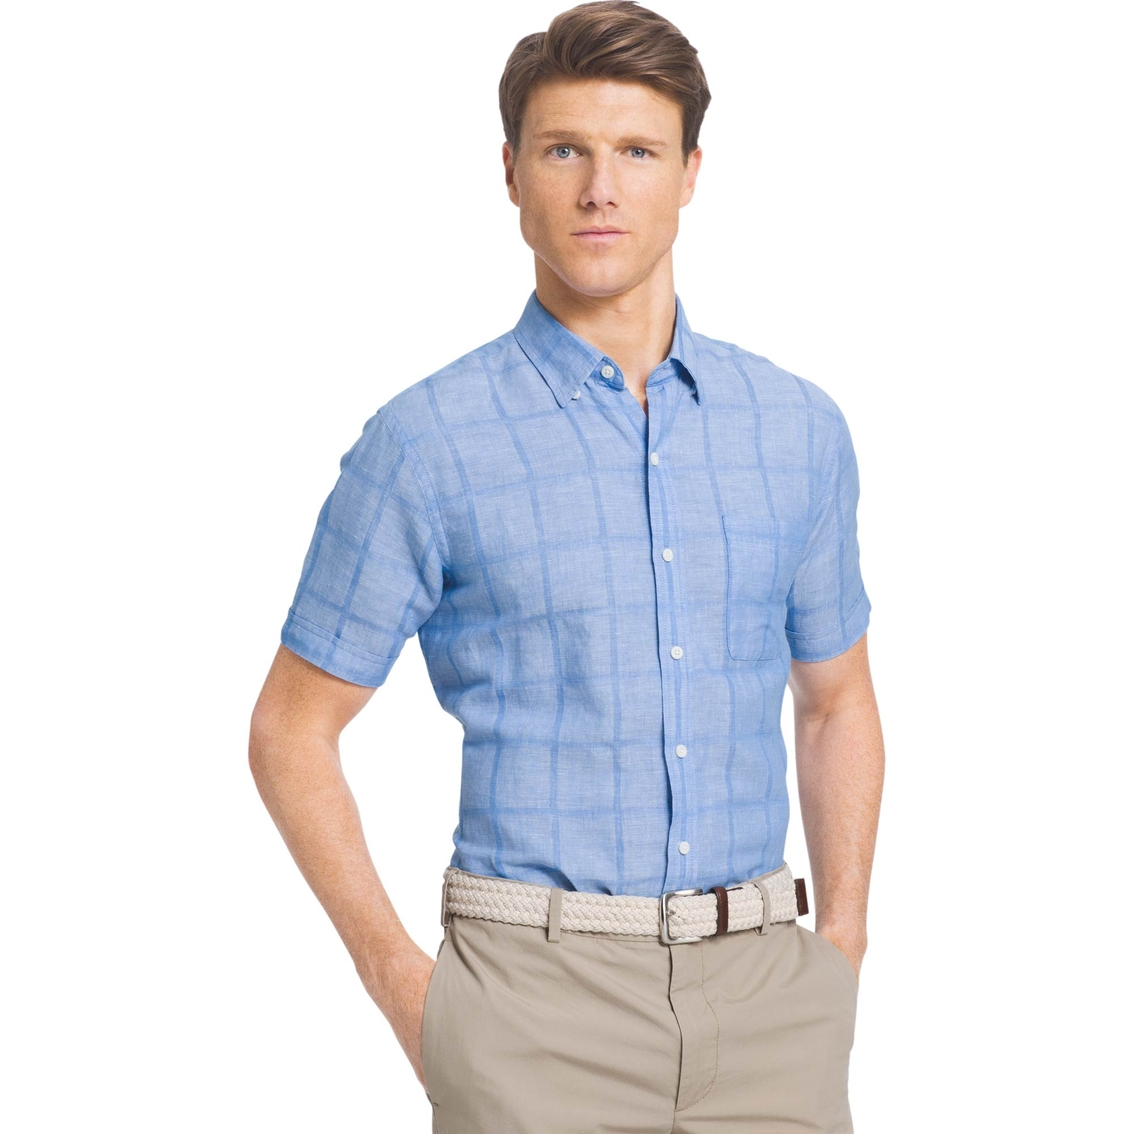 Izod sportswear saltwater texture button down shirt for Izod button down shirts